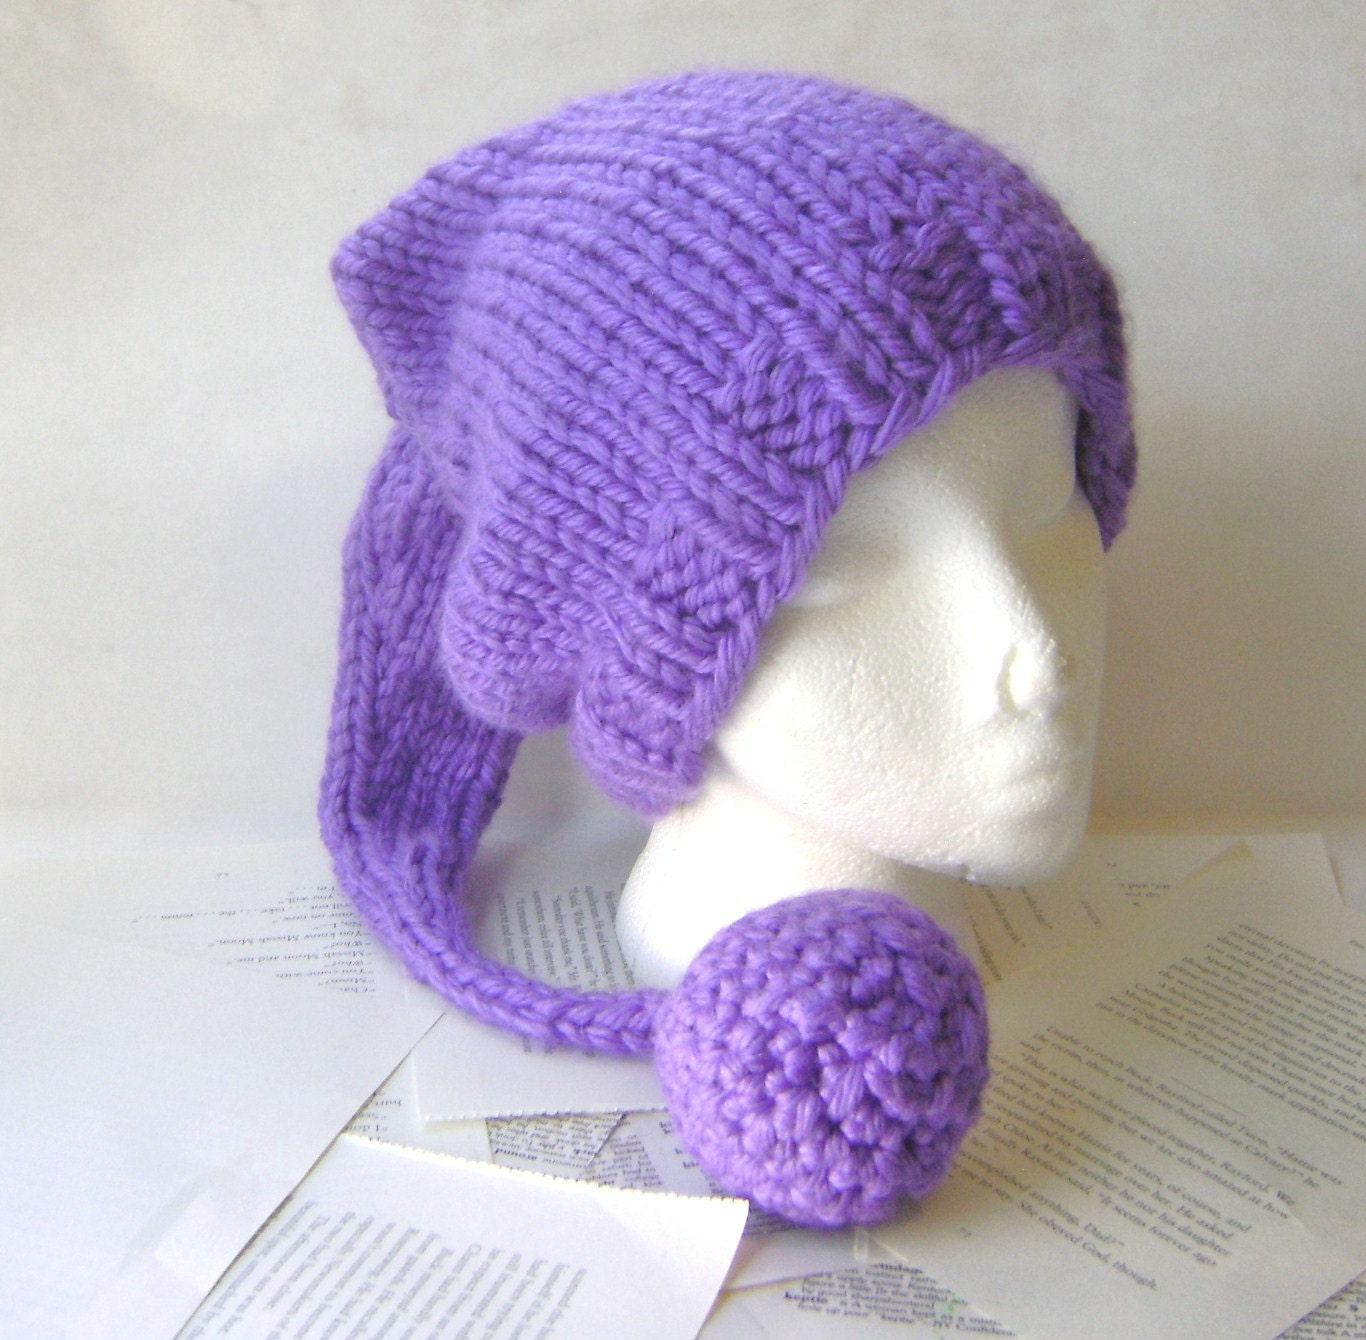 Chunky Knit Hat Pattern Free : Free Knitting Patterns For Chunky Yarn Hats